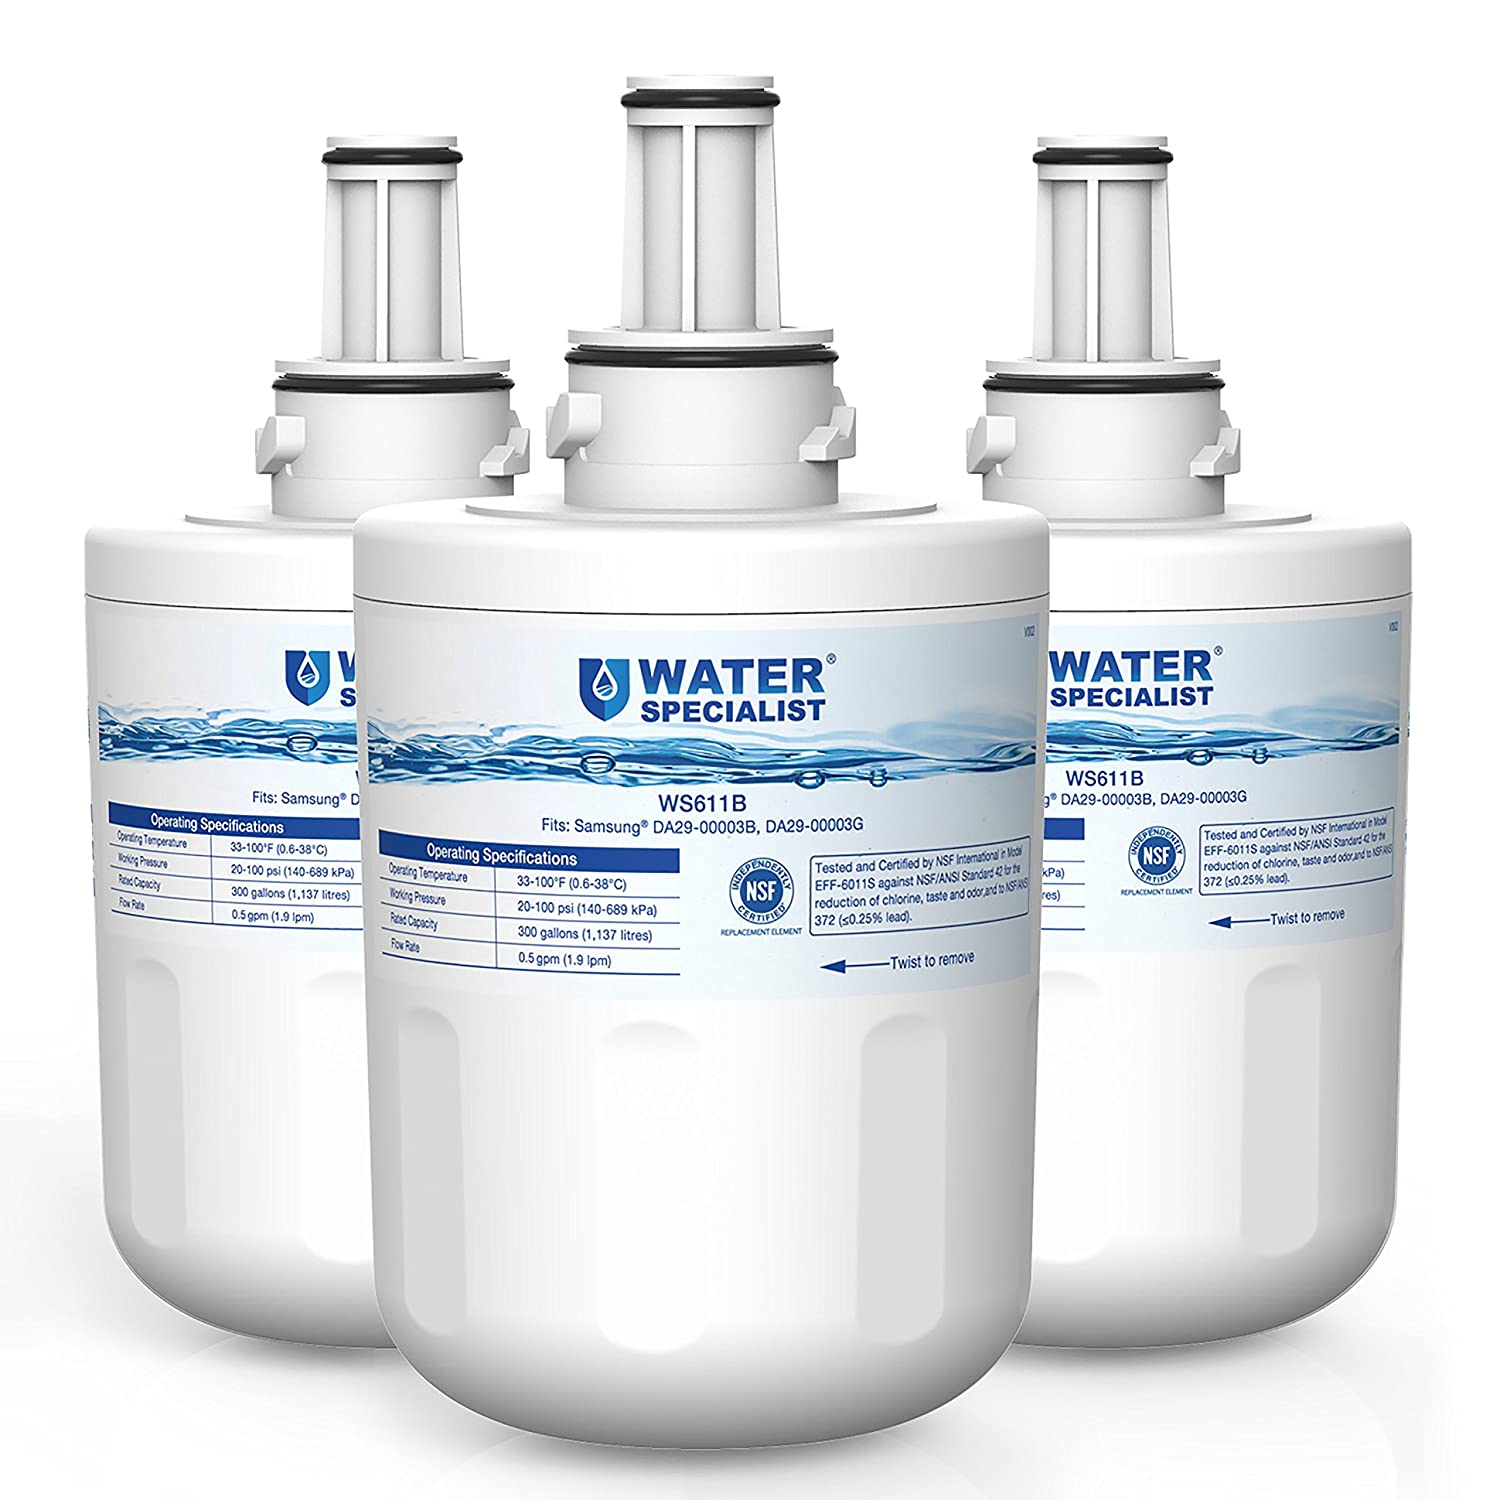 Waterspecialist DA29-00003G Refrigerator Water Filter, Replacement for Samsung DA29-00003B, RSG257AARS, RFG237AARS, DA29-00003F, HAFCU1, RFG297AARS, RS22HDHPNSR, WSS-1 (Pack of 3)